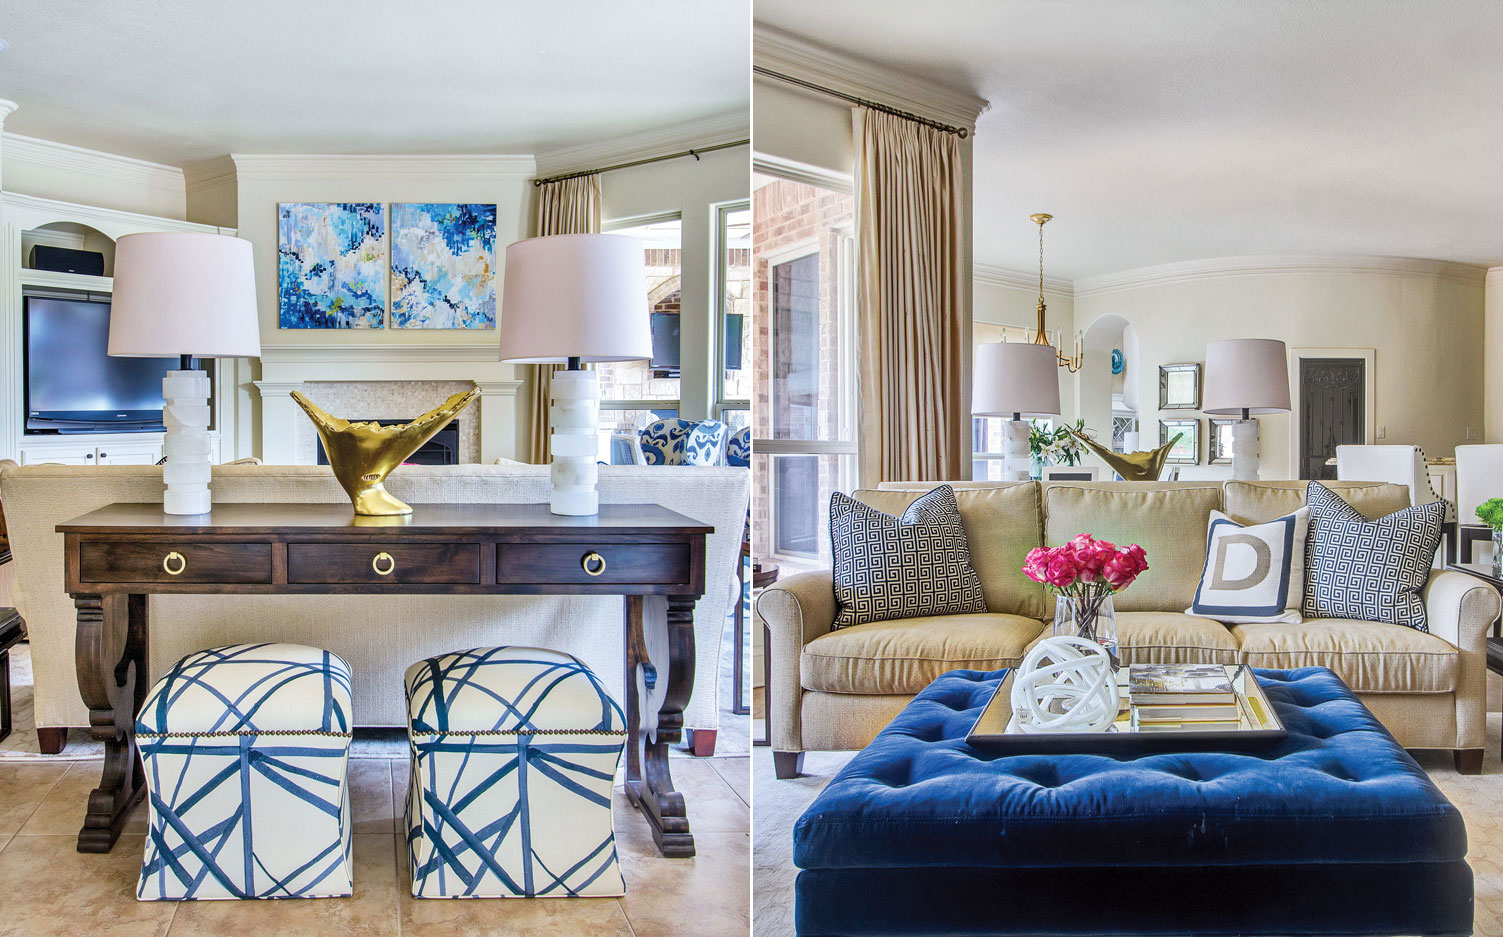 A photo of a living room with blue decor